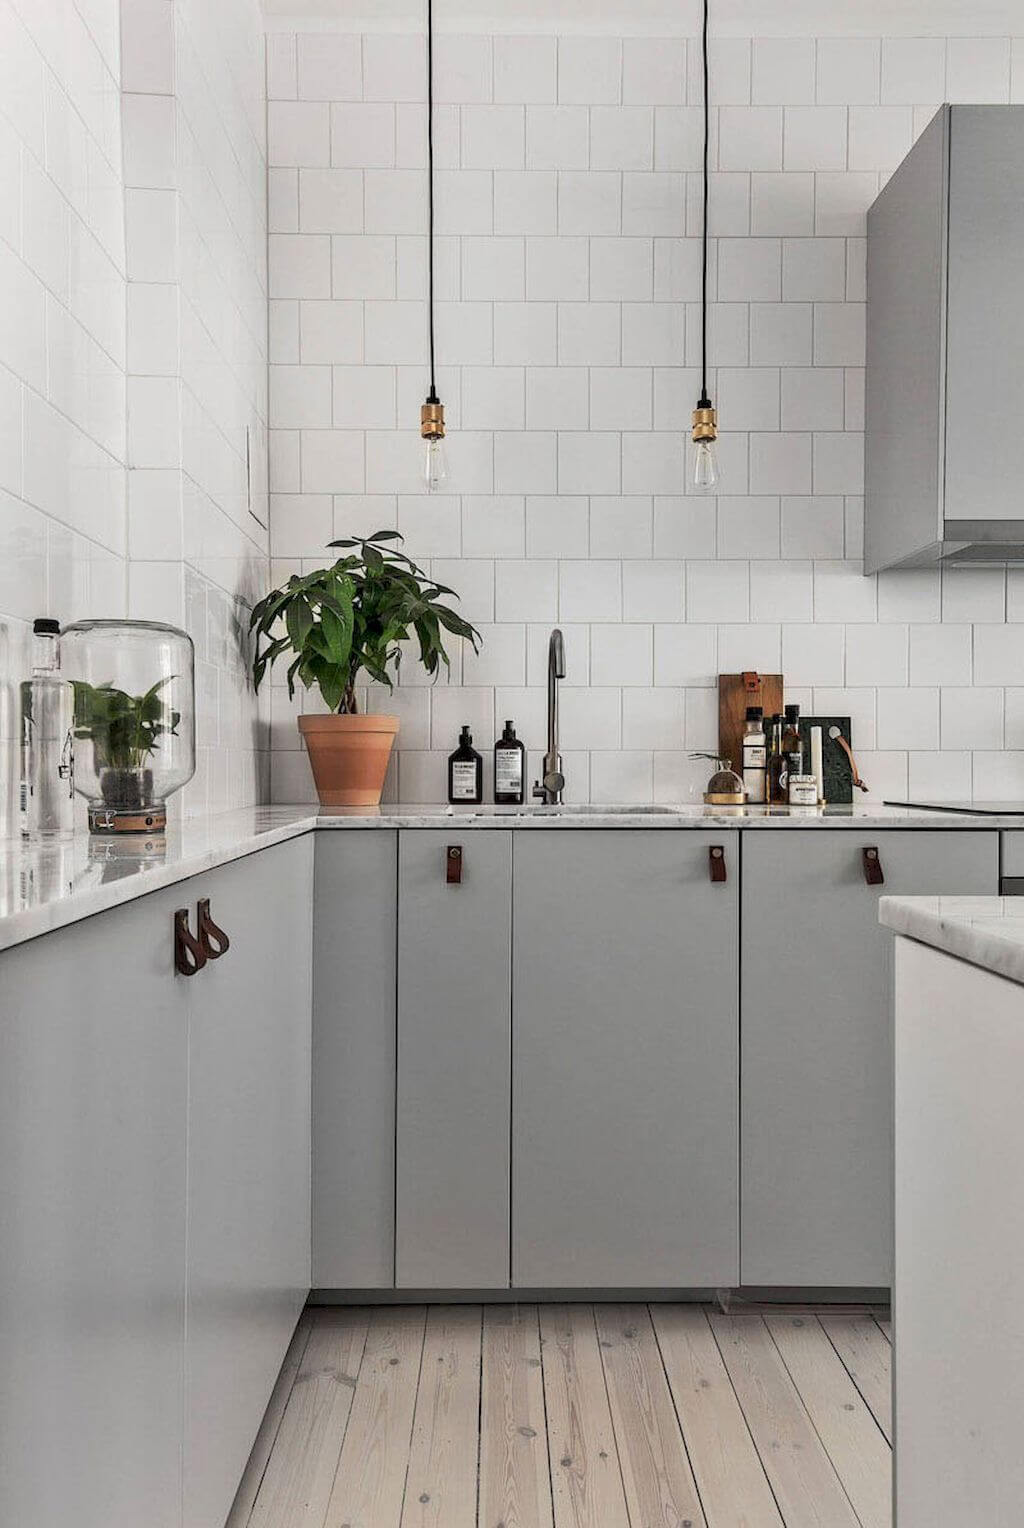 25 Eclectic Scandinavian Kitchen Designs (Let's Bring The Charm!) - 662C862Abf0086Fc83C35B3E991D2870